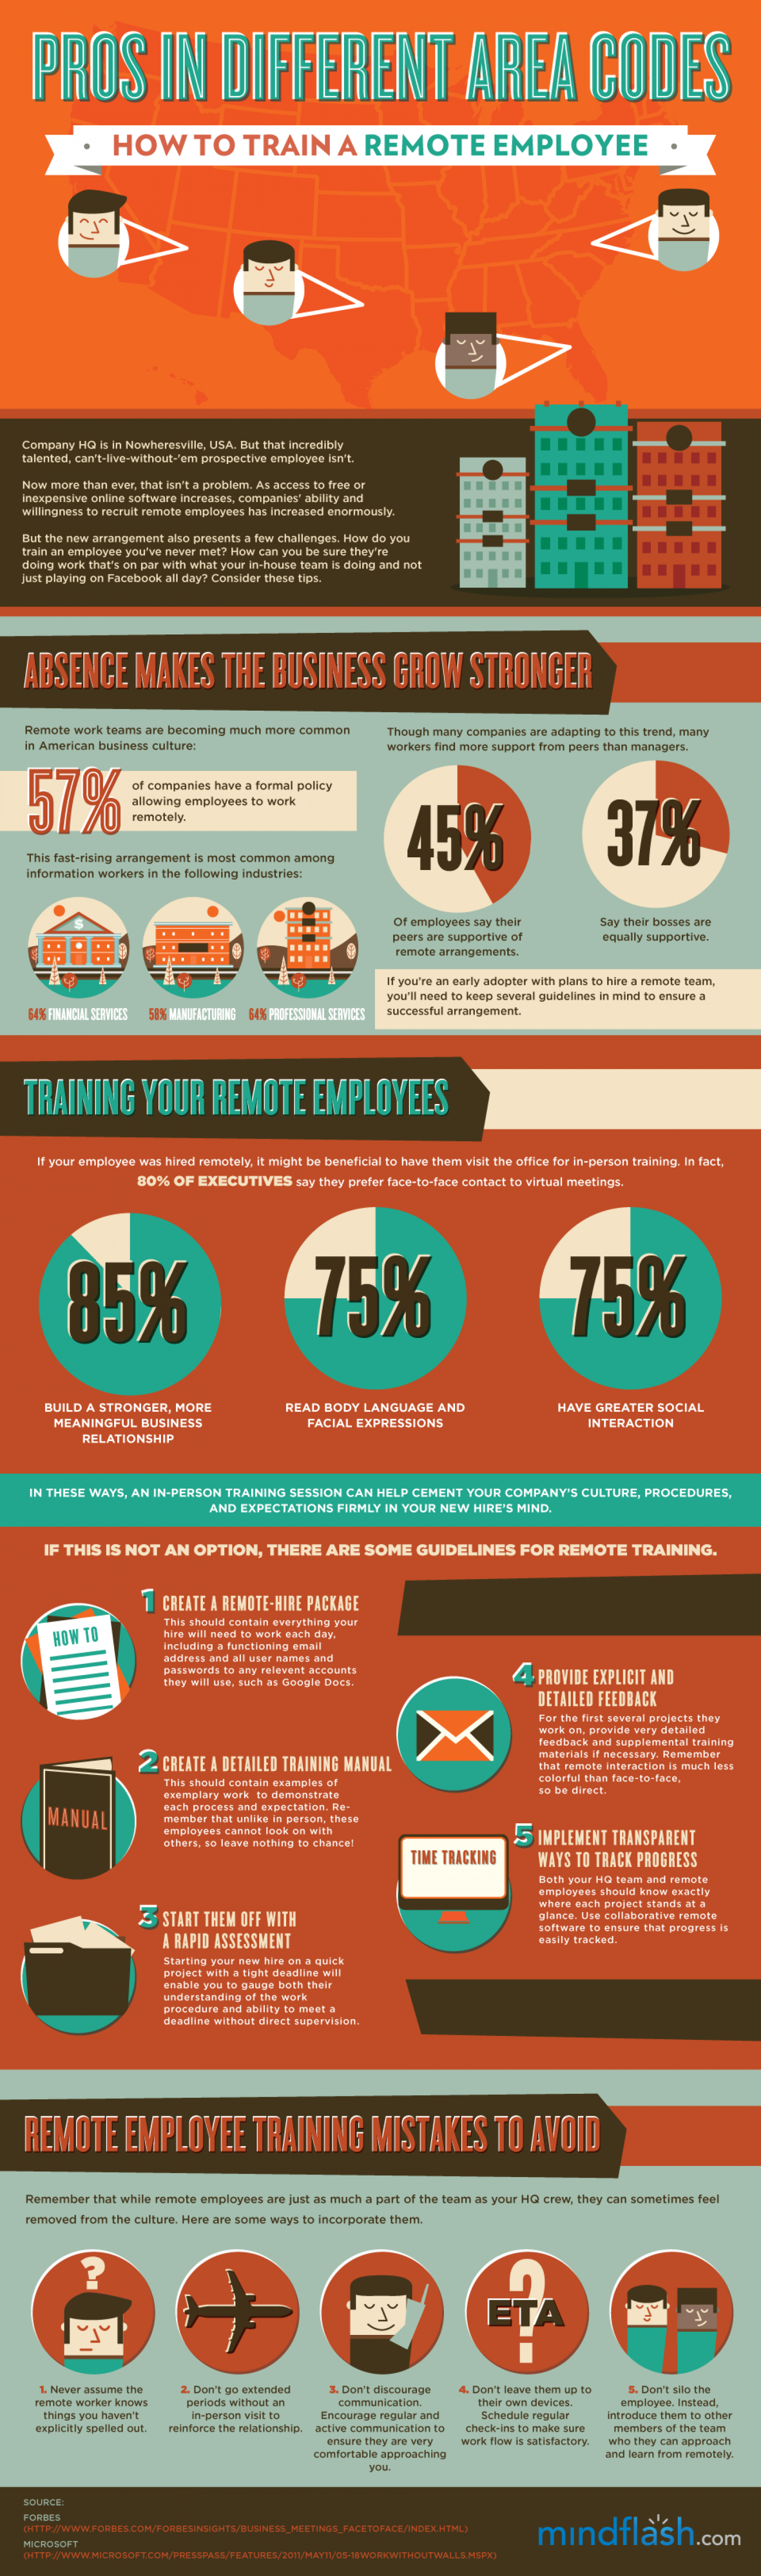 Pros In Different Area Codes: How to Train a Remote Employee Infographic